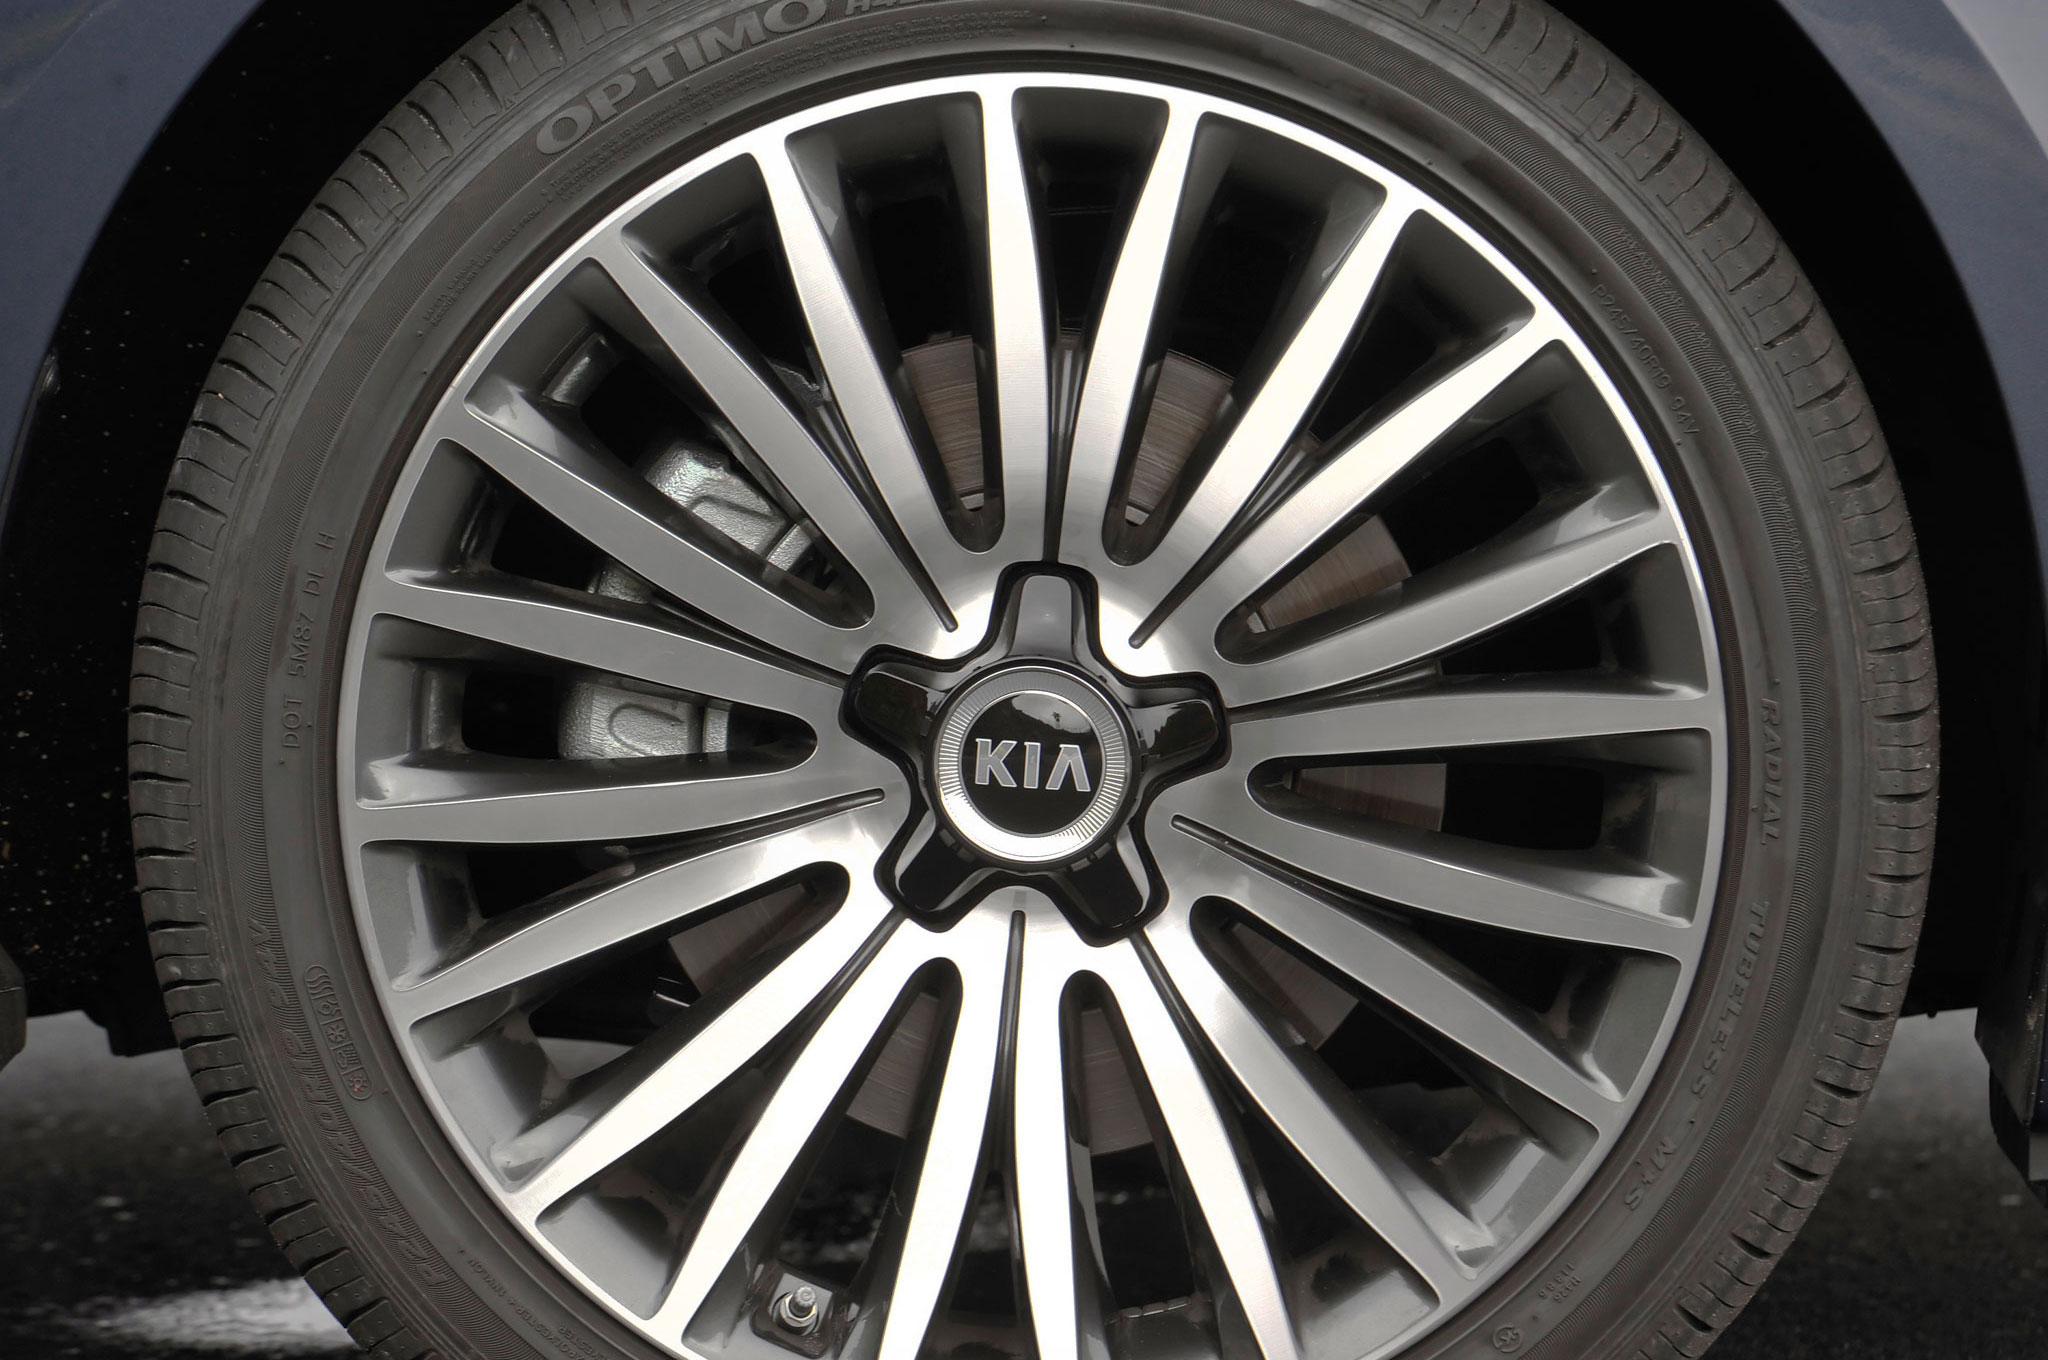 Kia Cadenza wheels #1